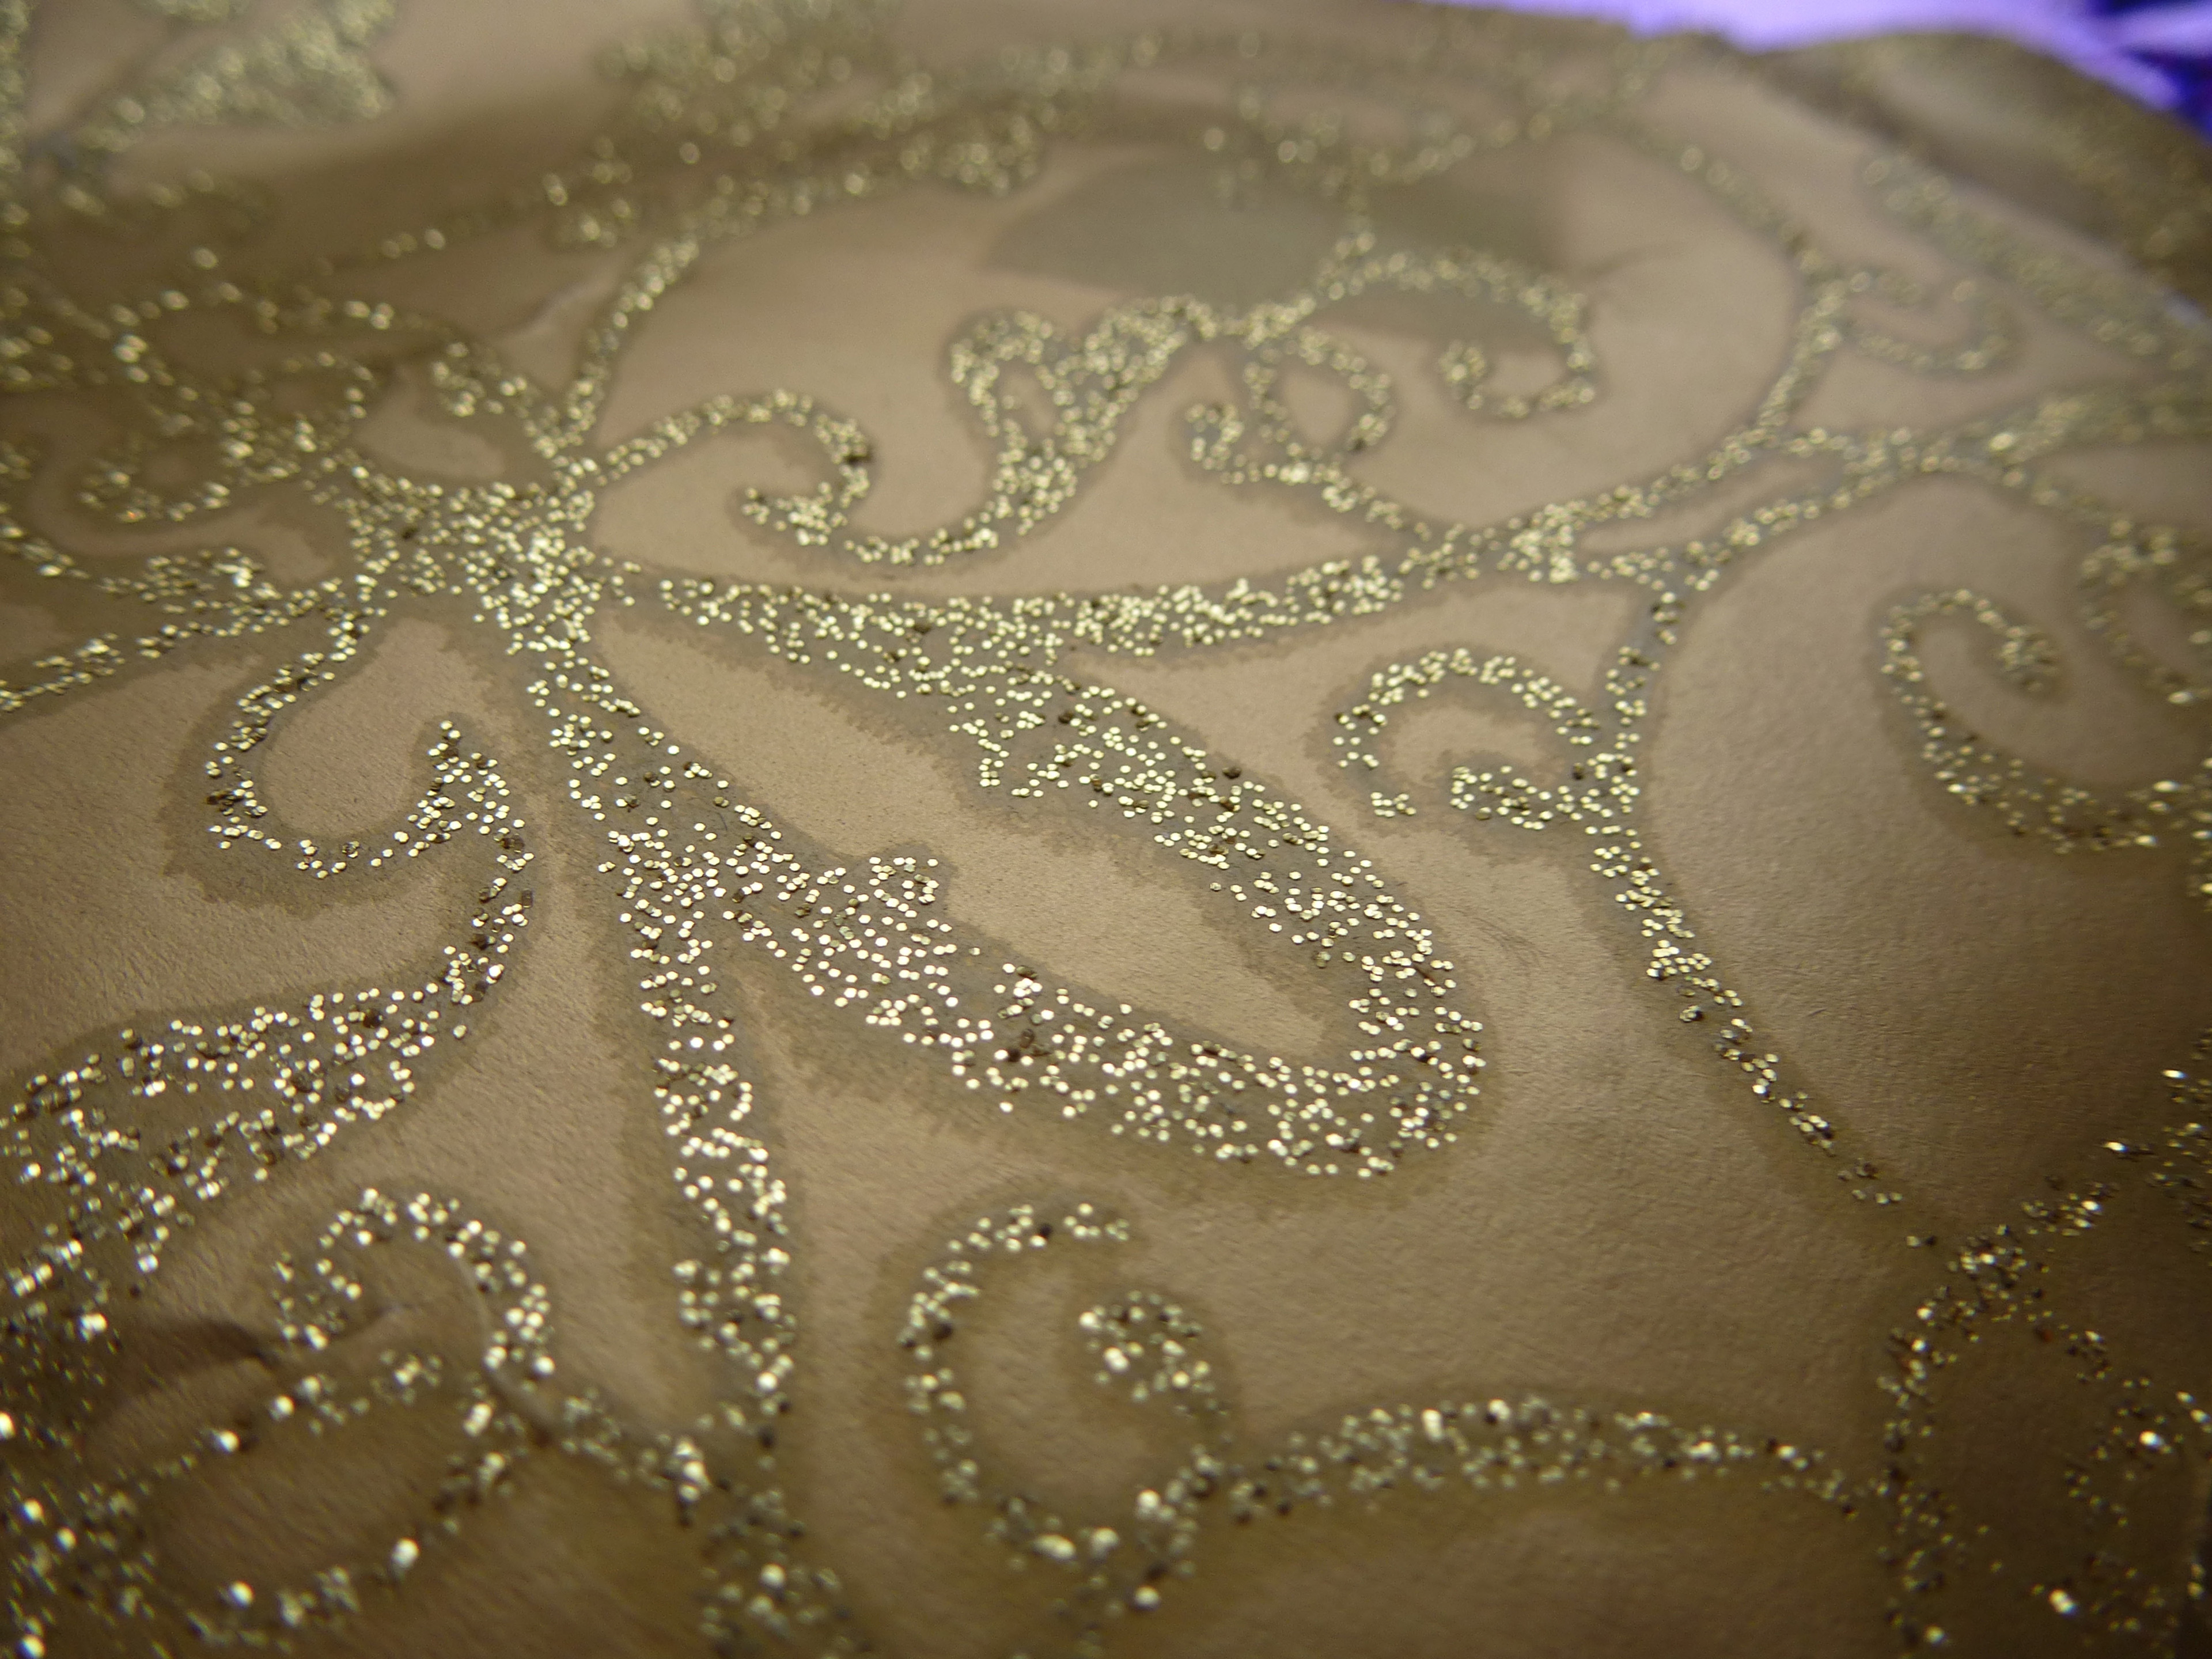 Close up Artistic Glittering Gold Design on Brown Background for Backdrop.